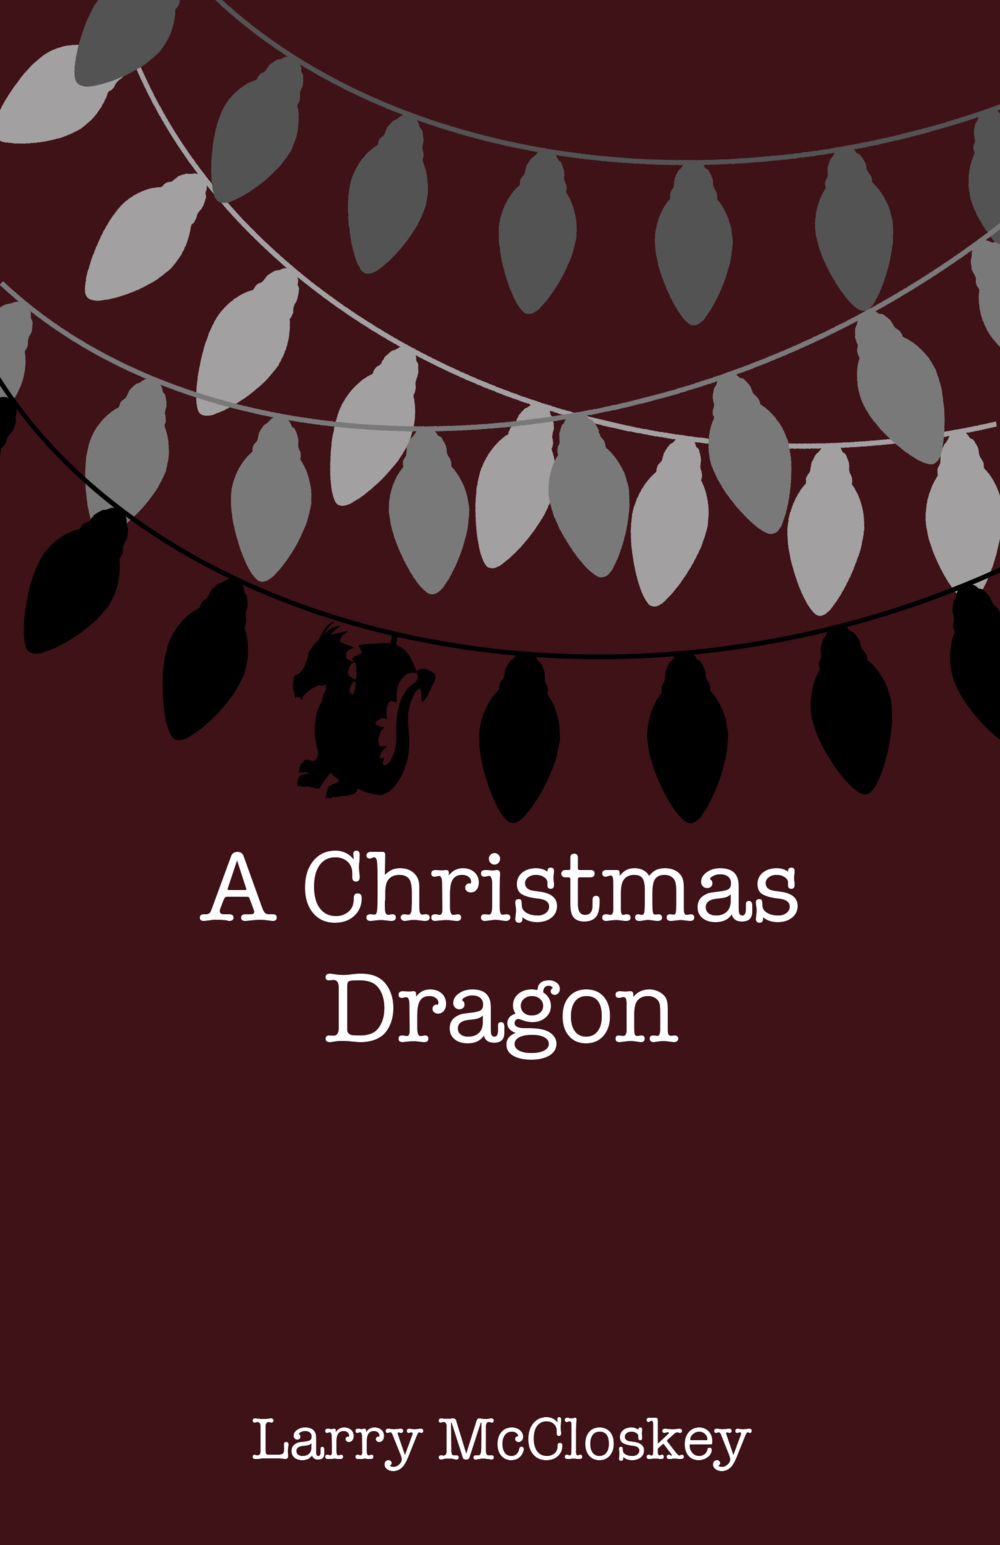 ChristmasDragon_coverArt_04.png